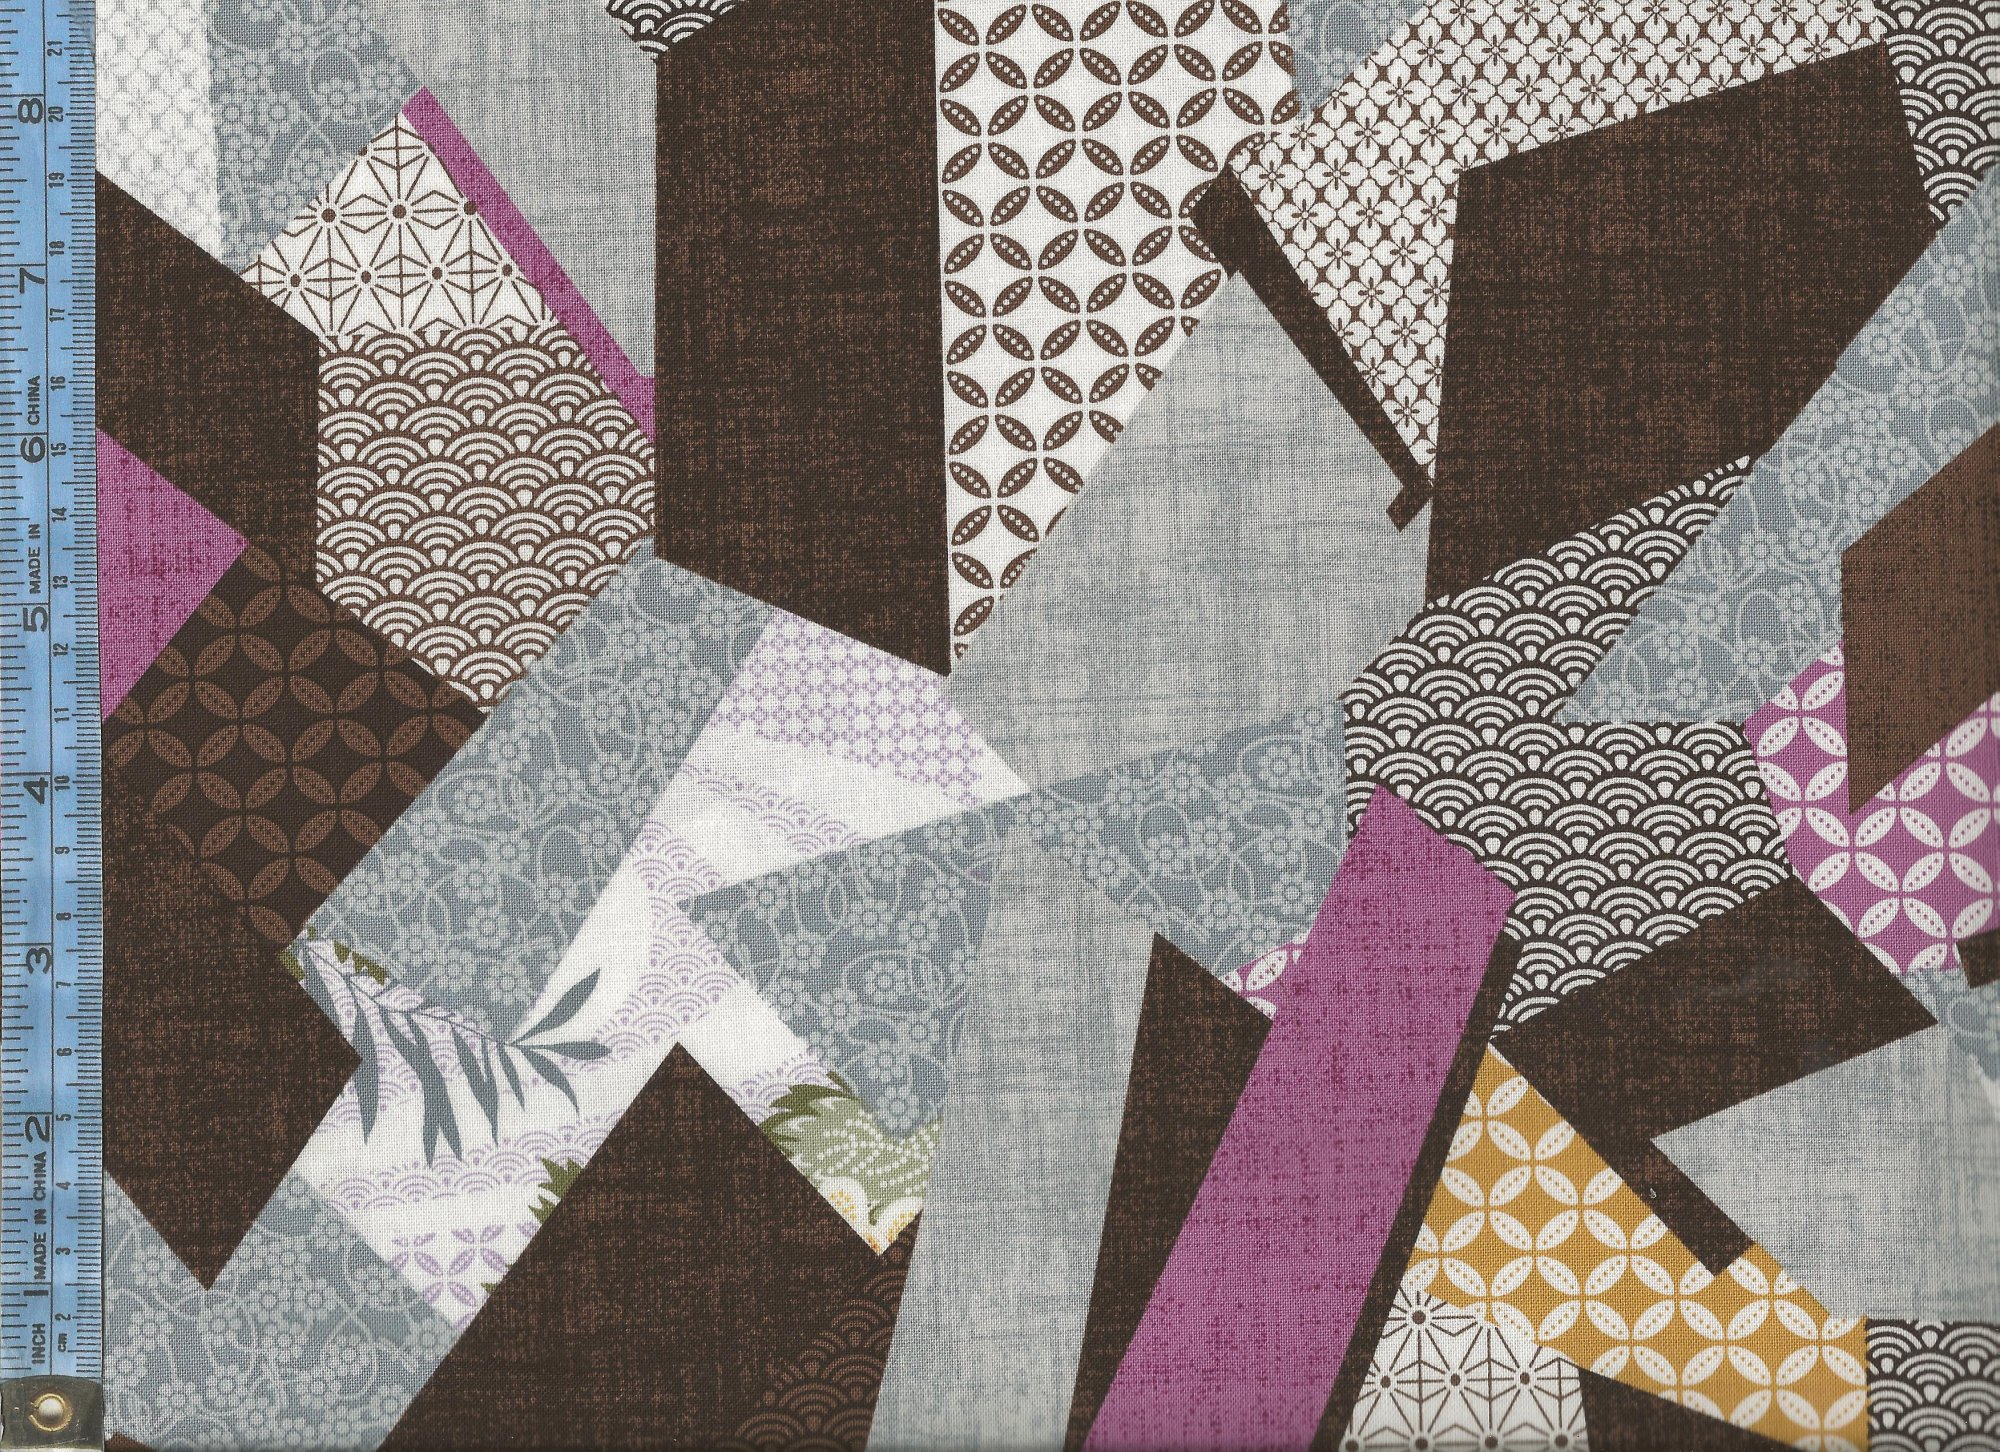 Kimono Garden - (3101-33) assorted patterned fragments